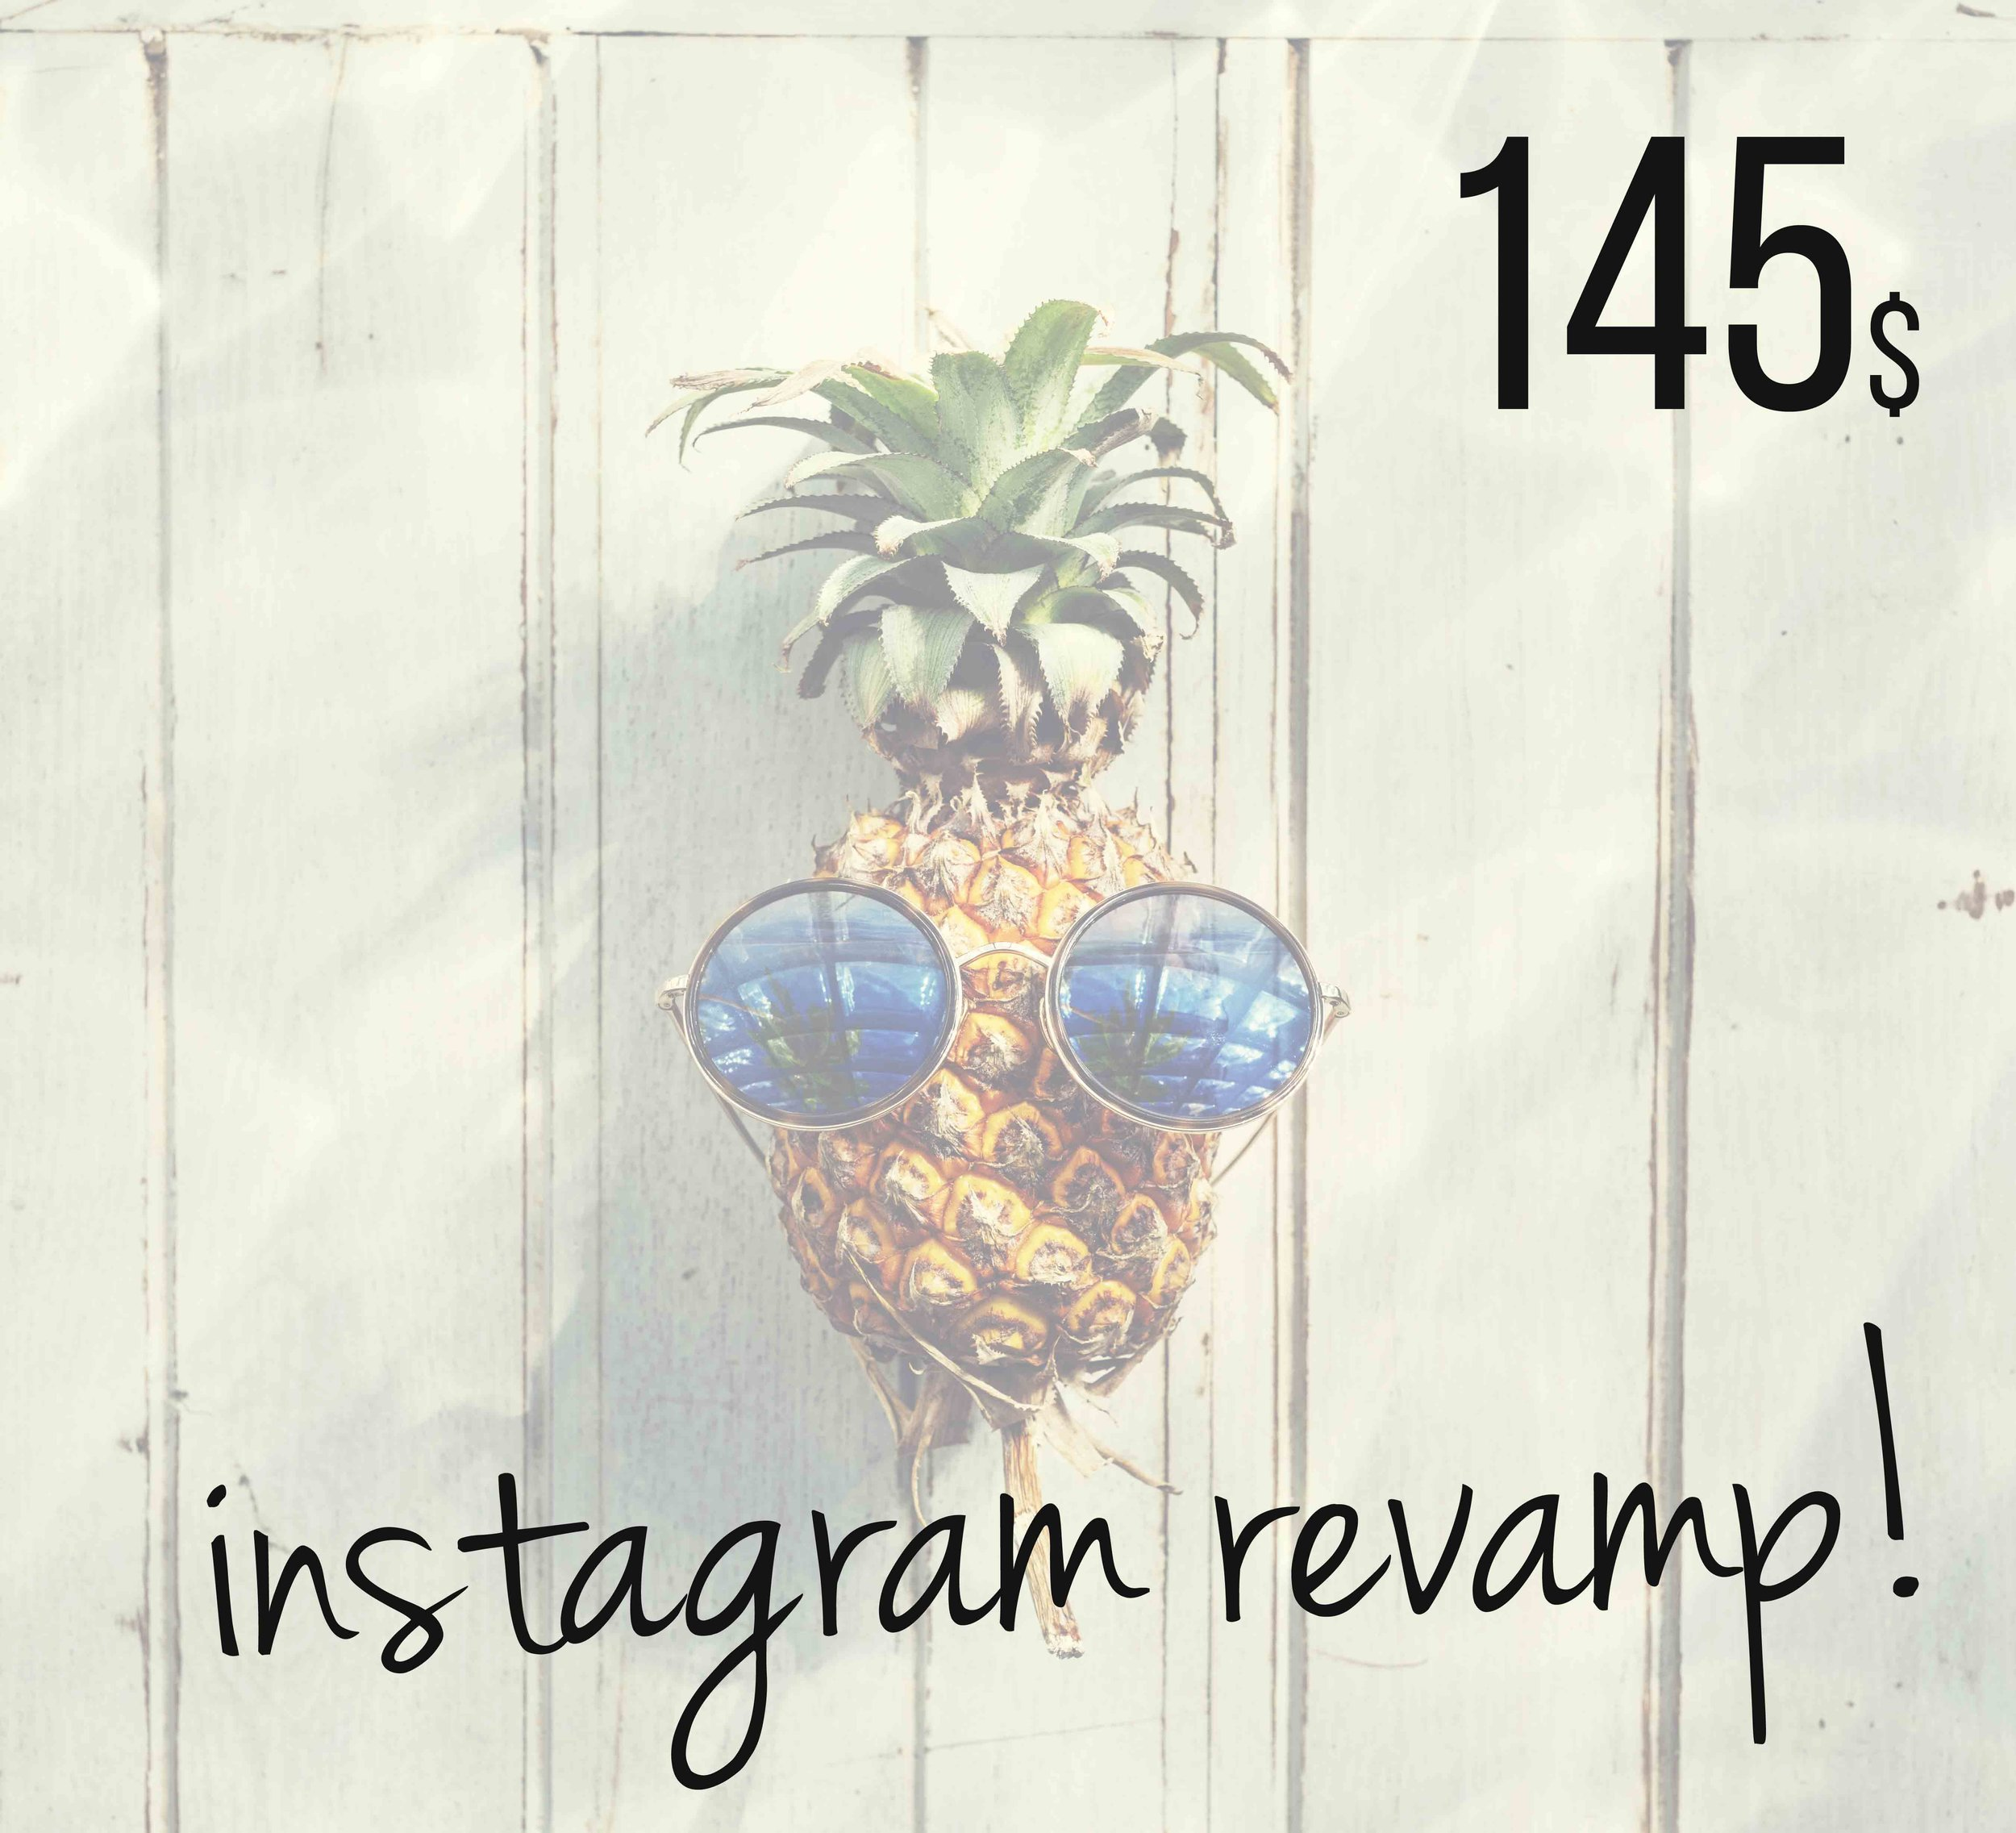 Revamp your Instagram Account to attract more engaged followers!